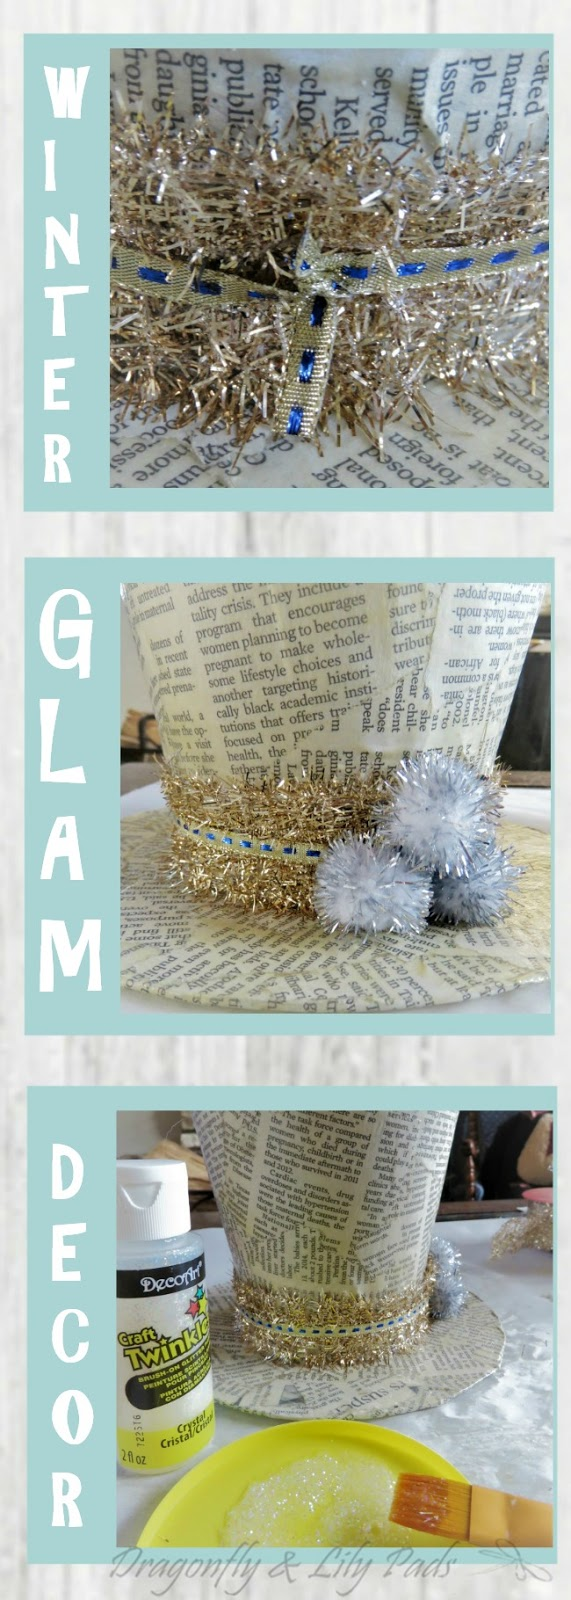 DIY Winter Glam Decor Tutorial last three steps after letting it dry overnight.